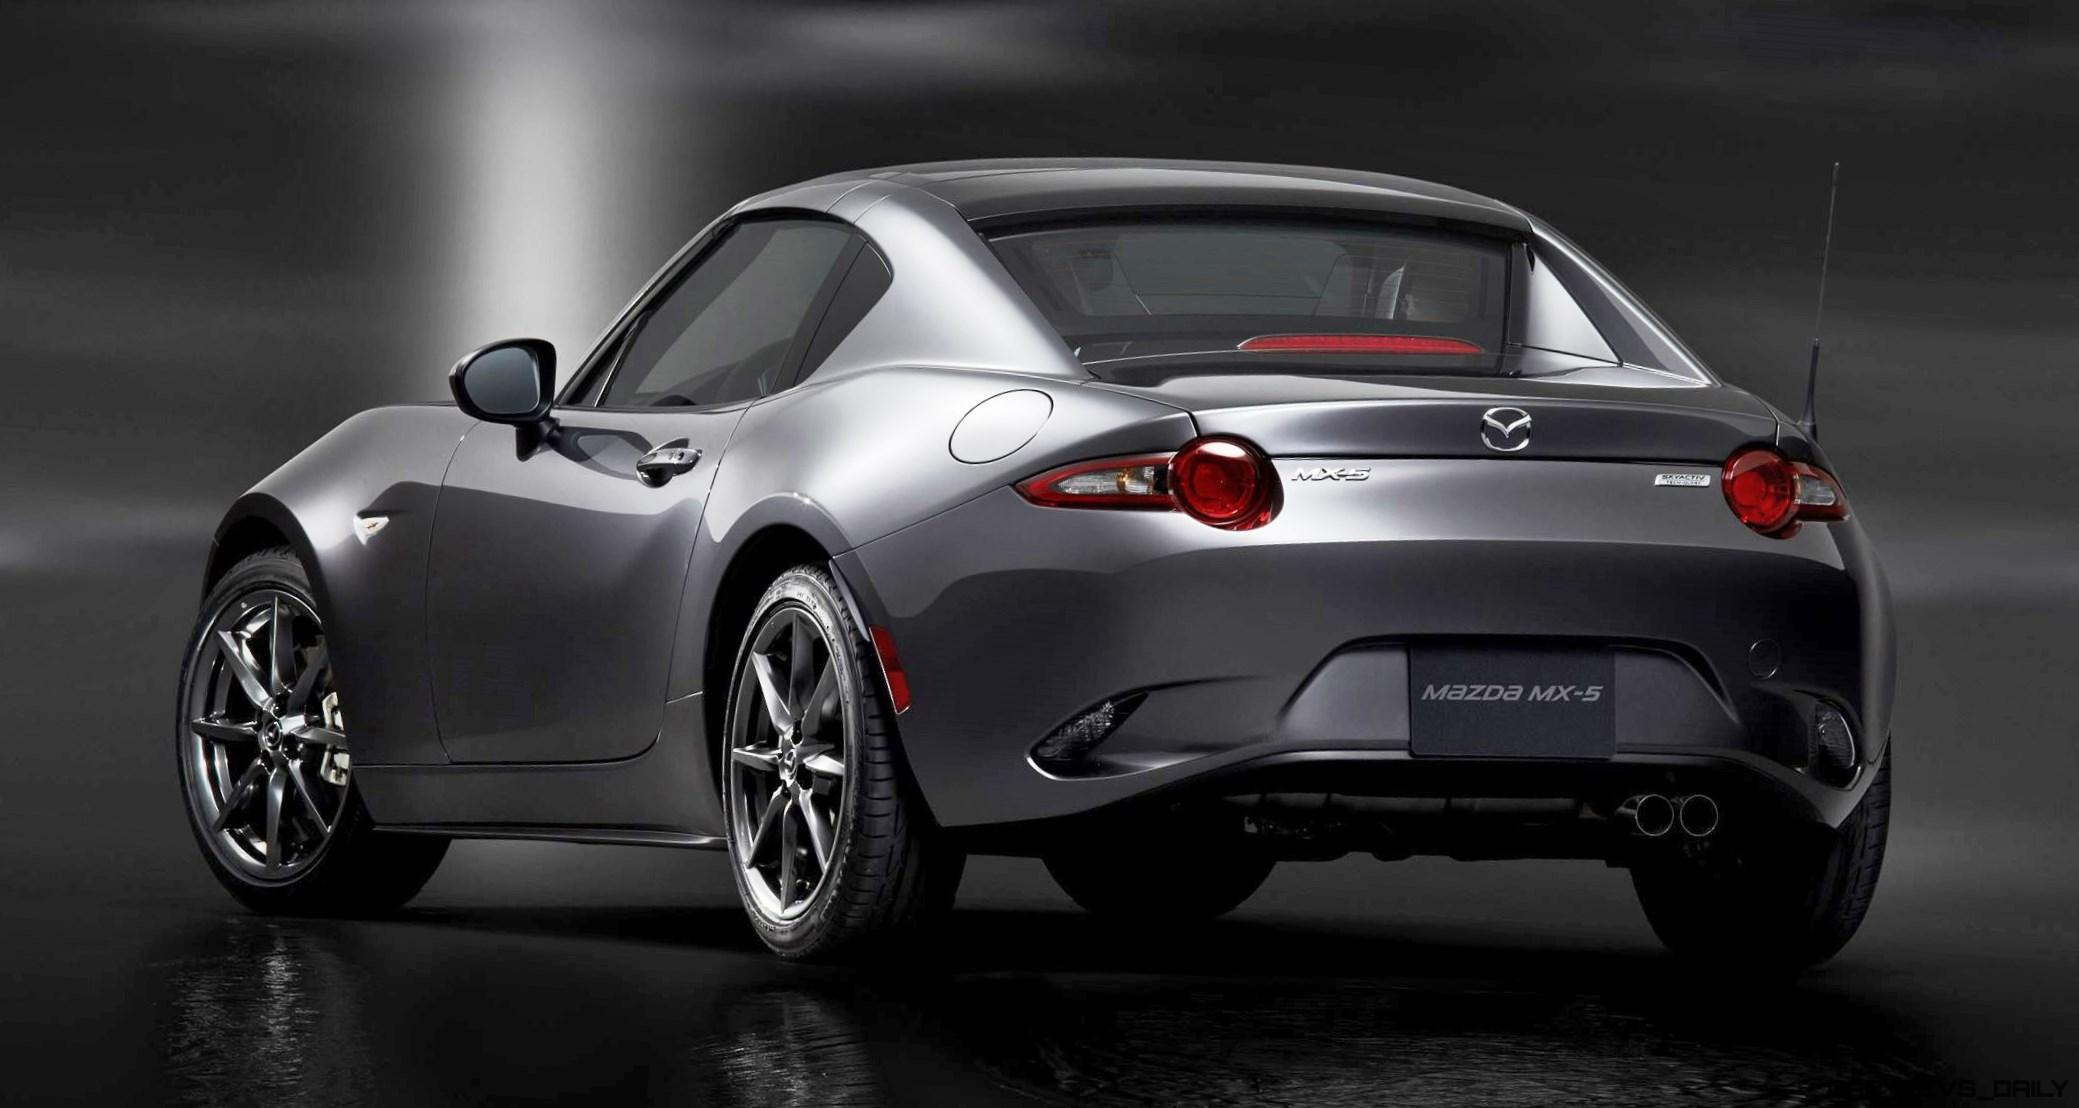 nyias 2017 mazda mx 5 rf retractable fastback is new gt86 rival. Black Bedroom Furniture Sets. Home Design Ideas